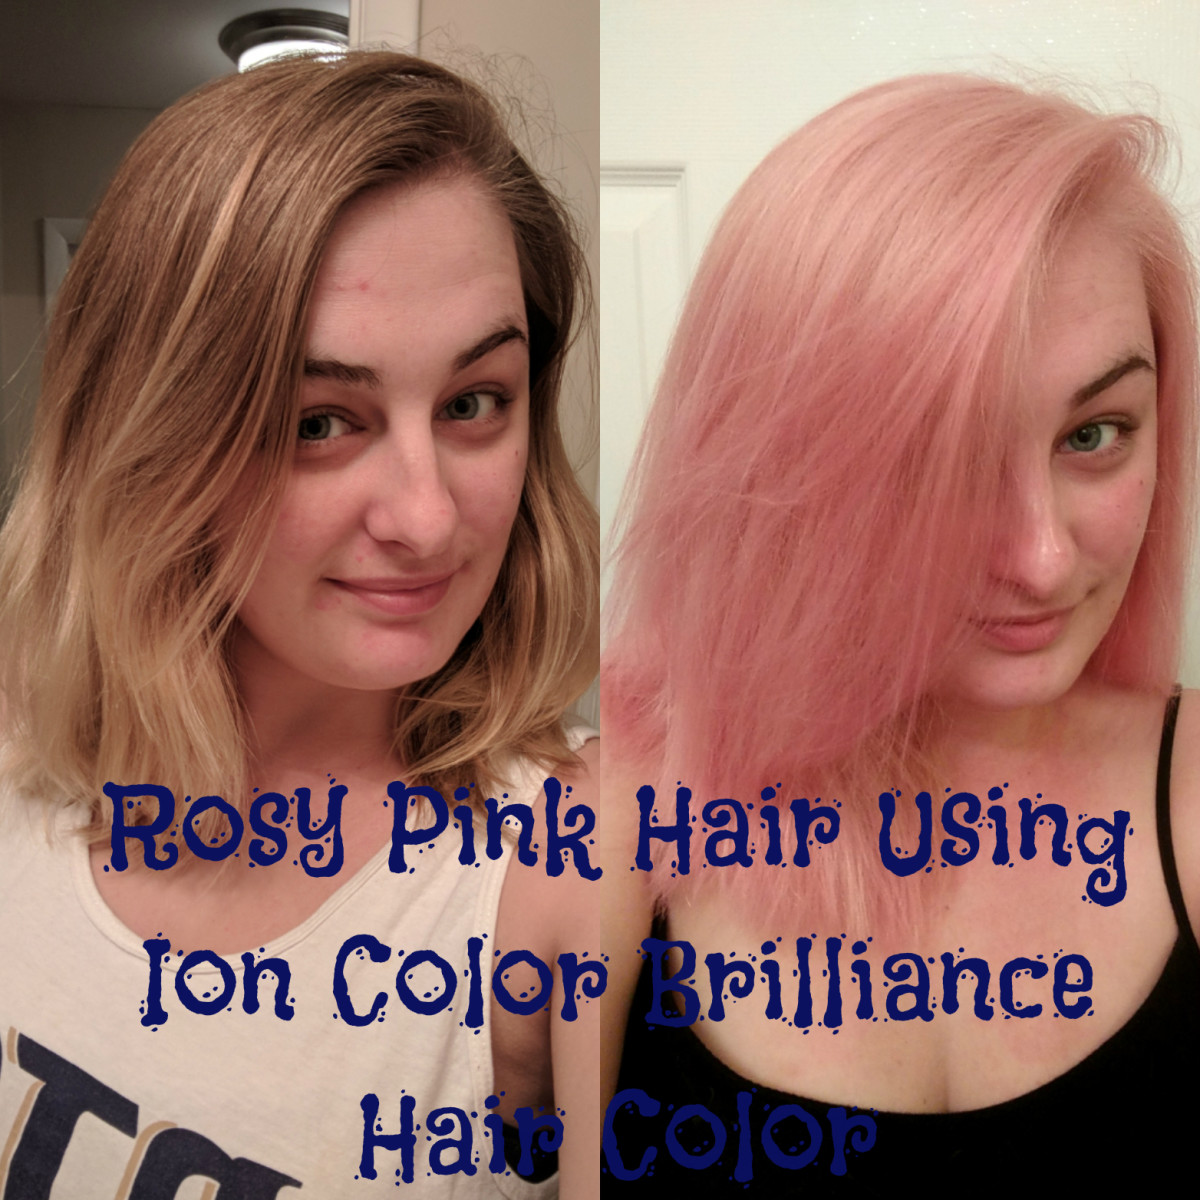 Before and after photos of my rosy pink hair.